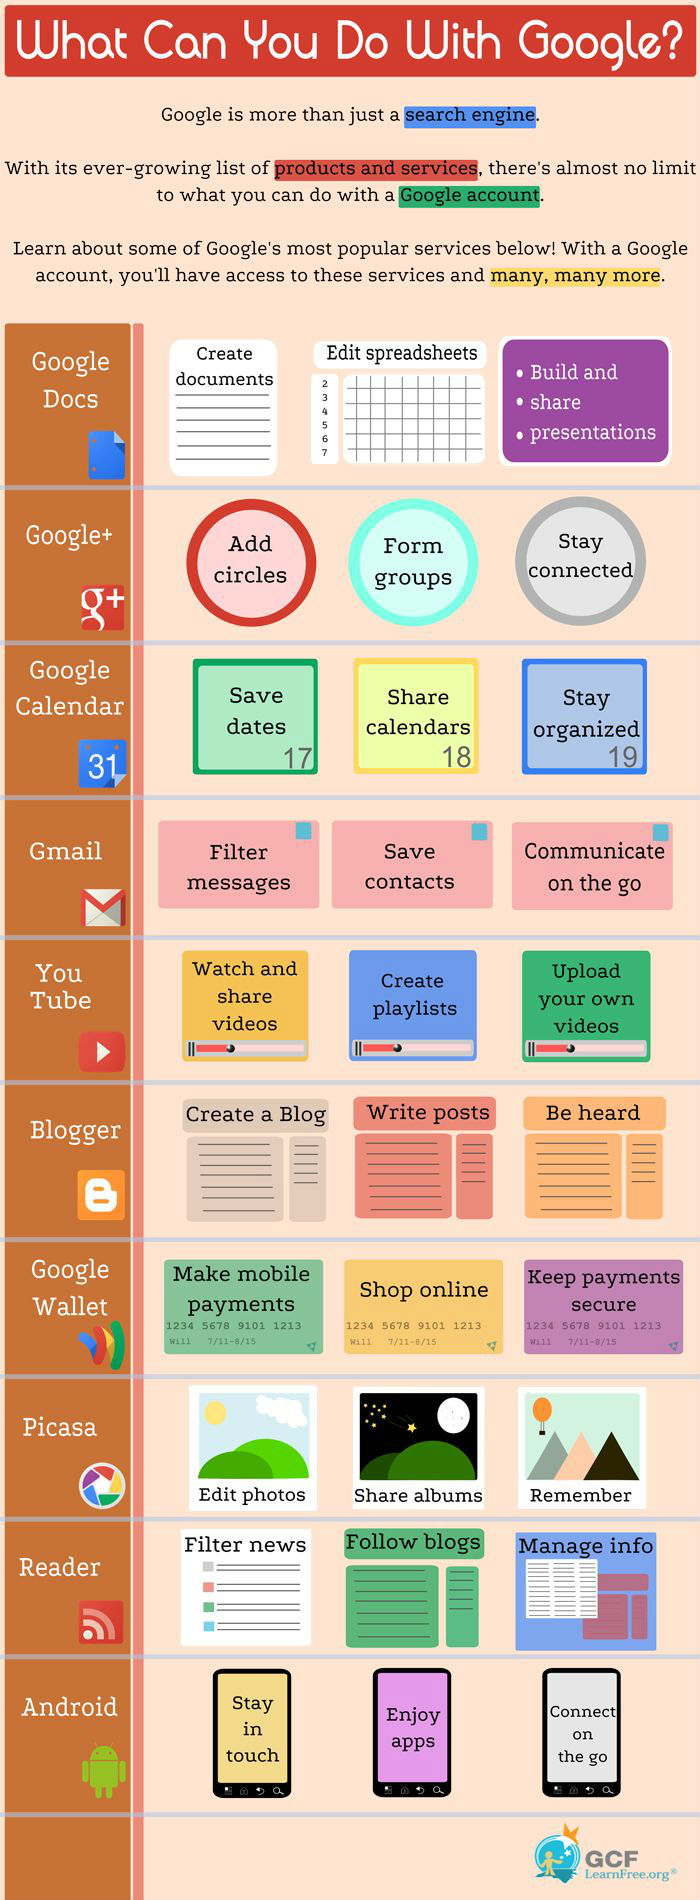 What Can You Do With Google? [Infographic]